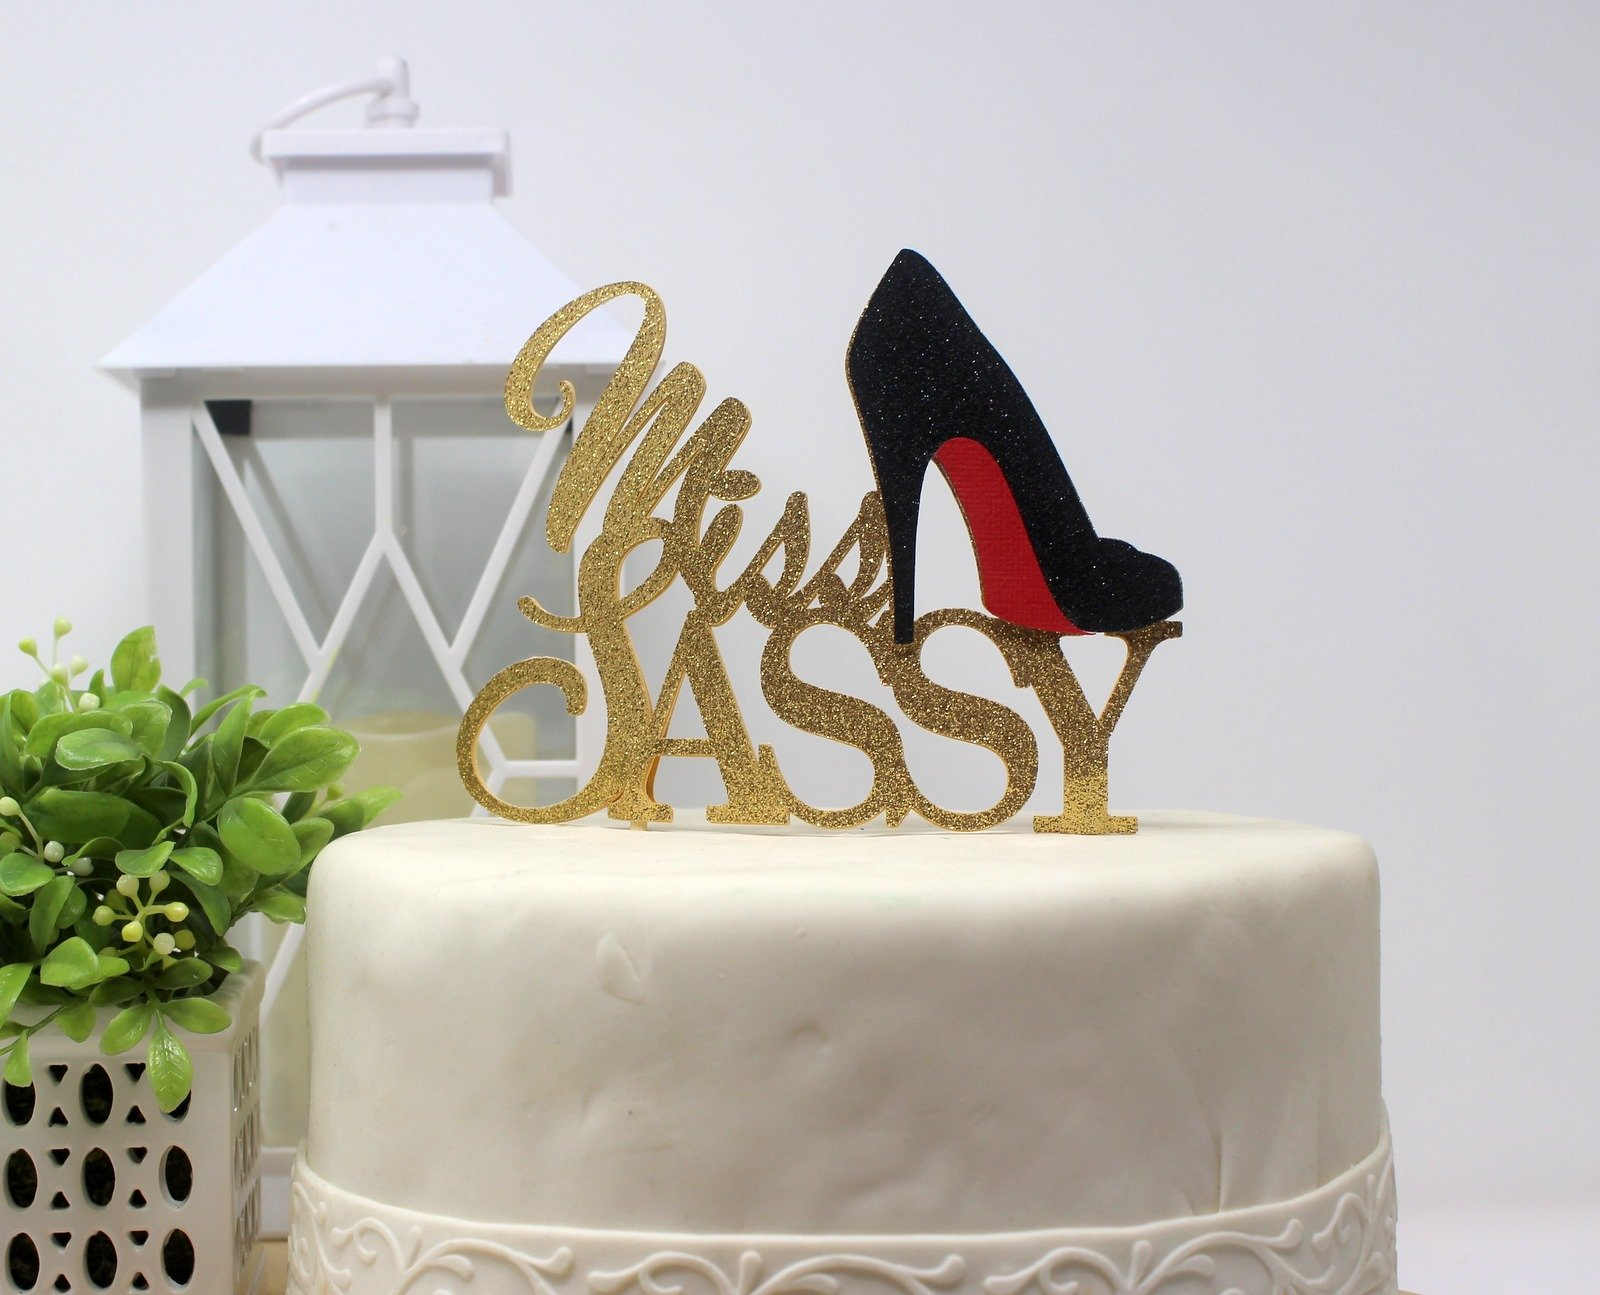 All About Details CATMSASGBL Miss Sassy Cake Topper (Gold and Black), 6in wide and 5in tall with 2-pcs of 4in wood skewers